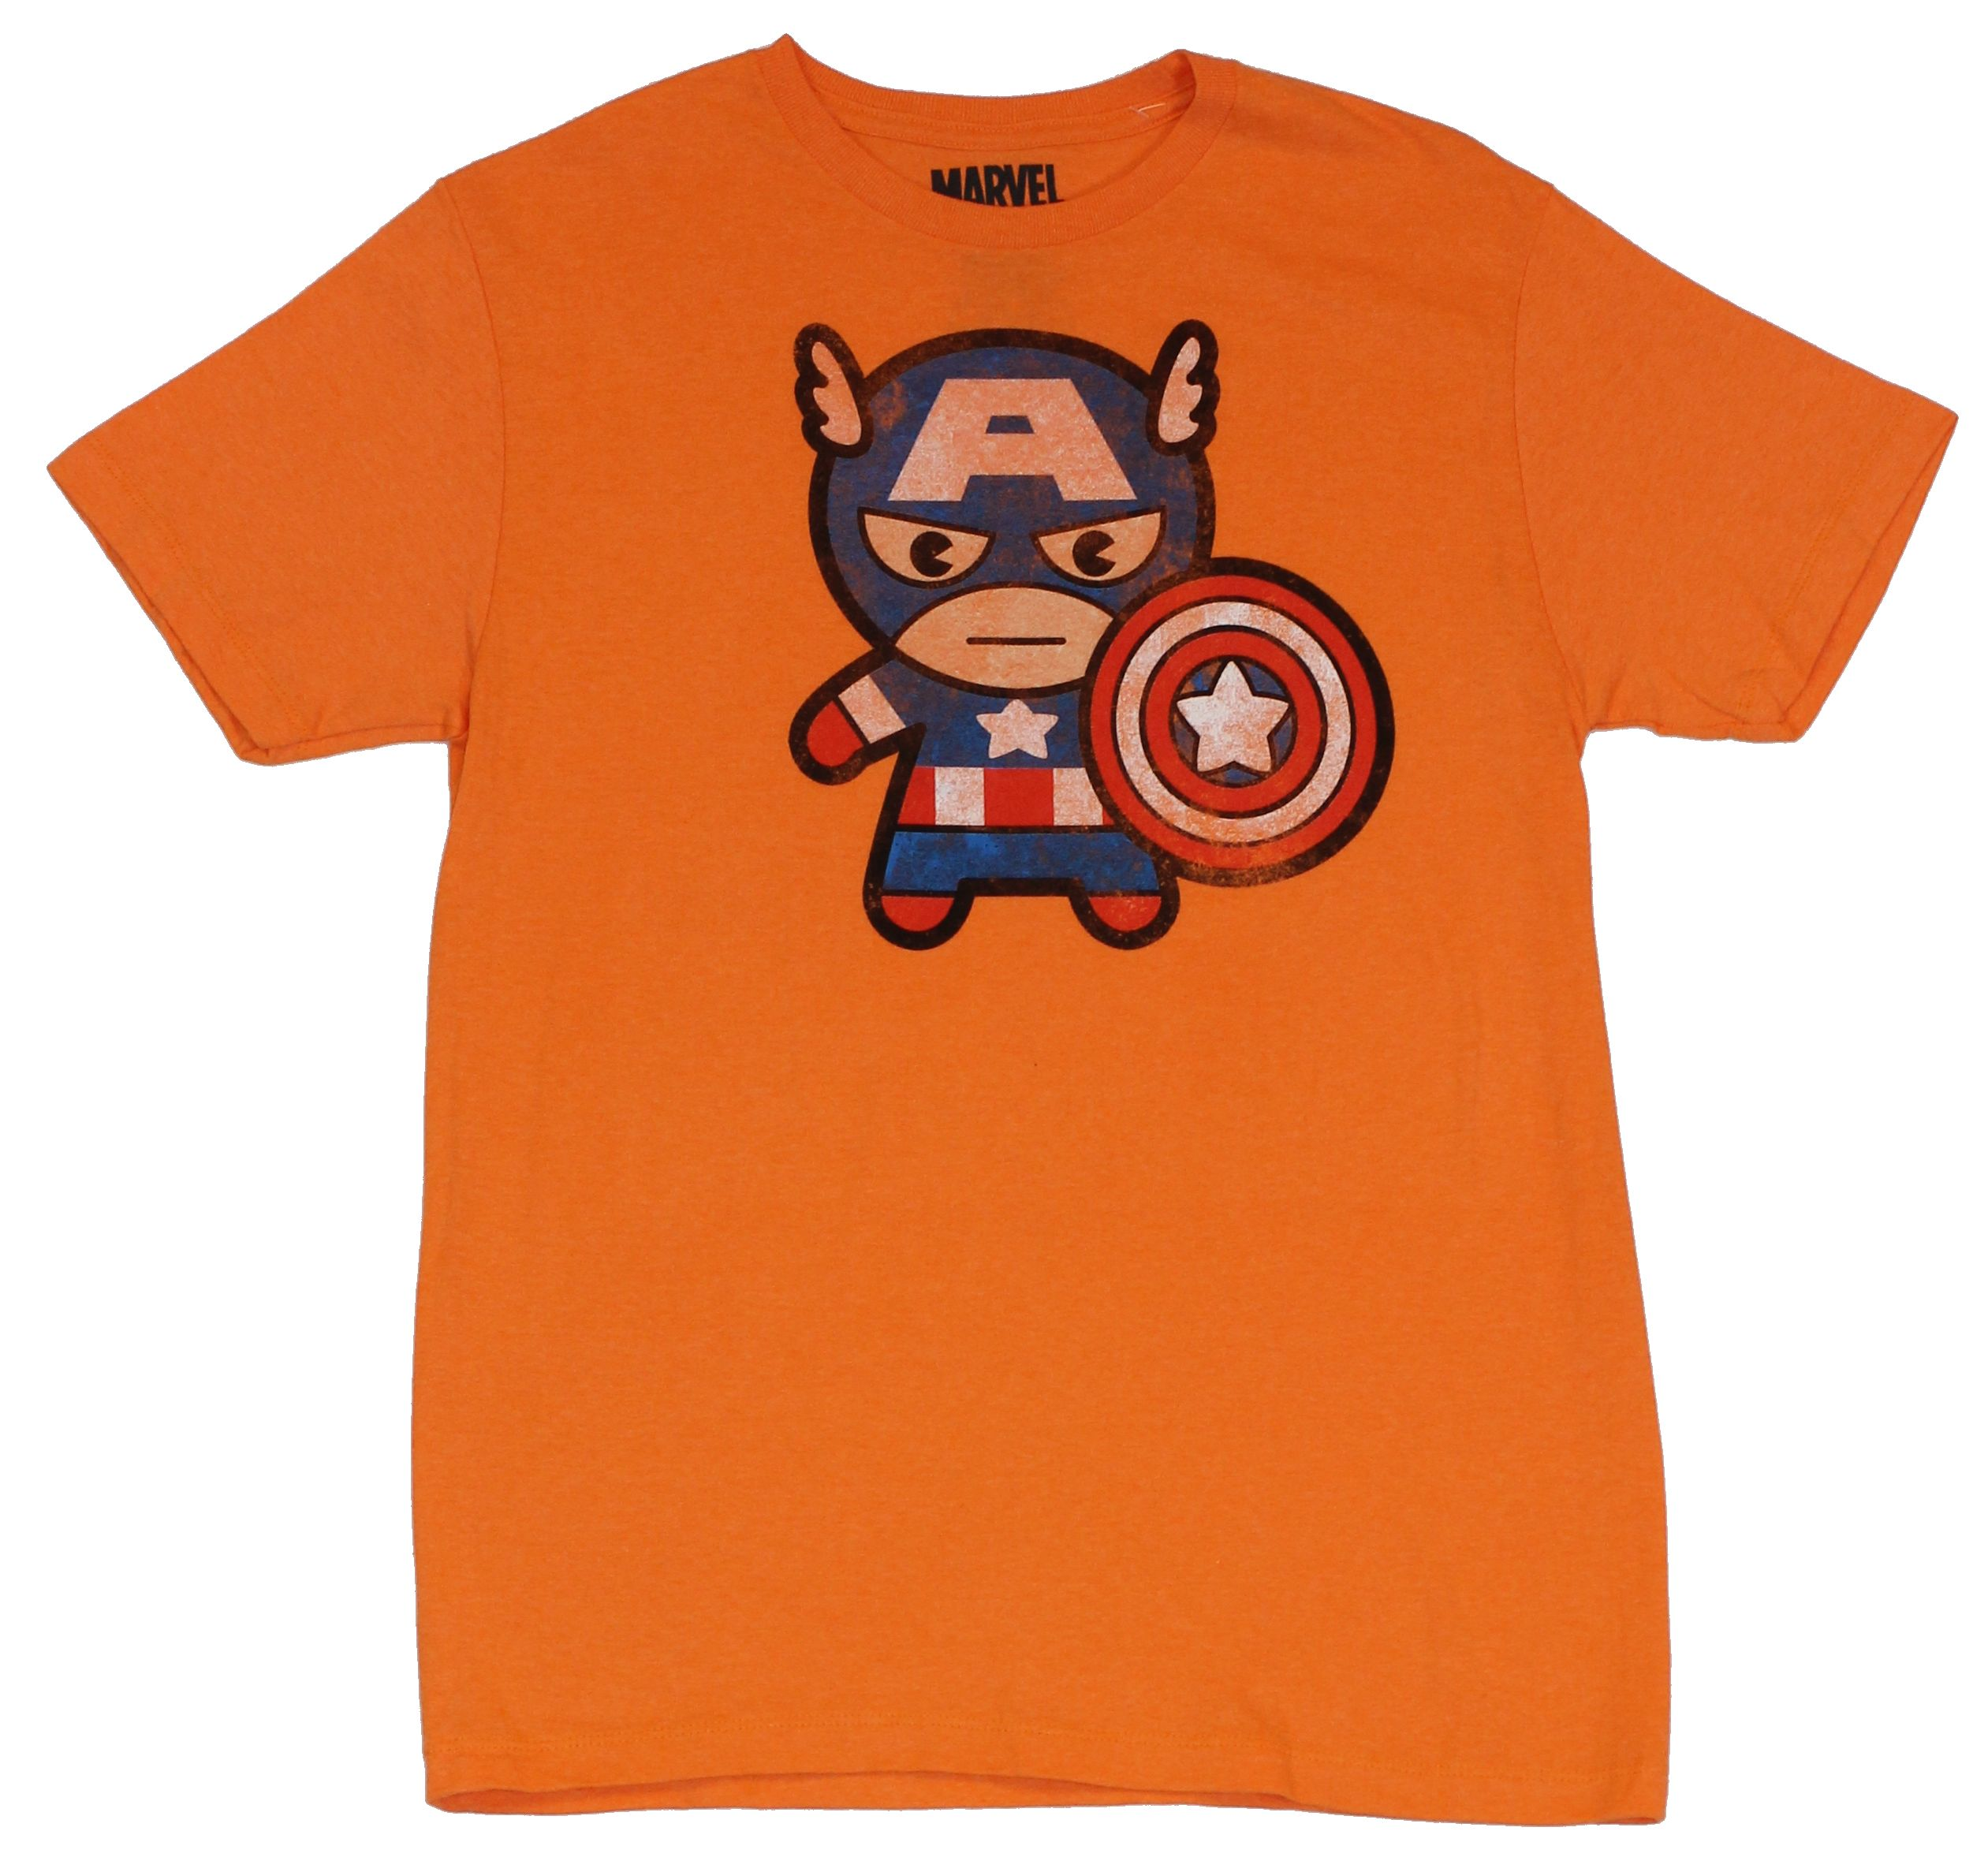 Officially Licensed Marvel Comics Marvel Distressed Characters Men/'s T-Shirt